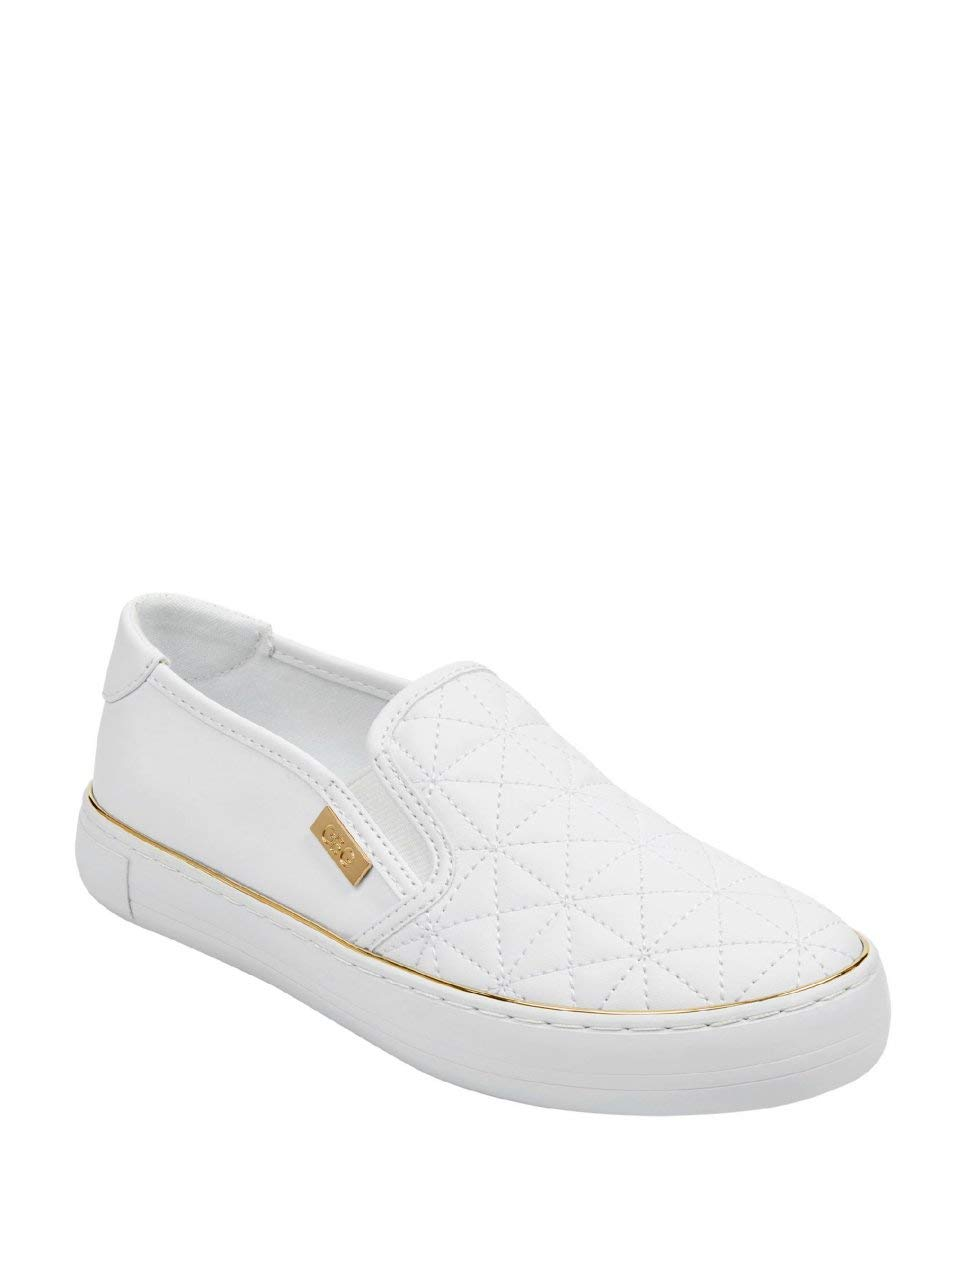 Guess Womens Golly Platform Sneakers